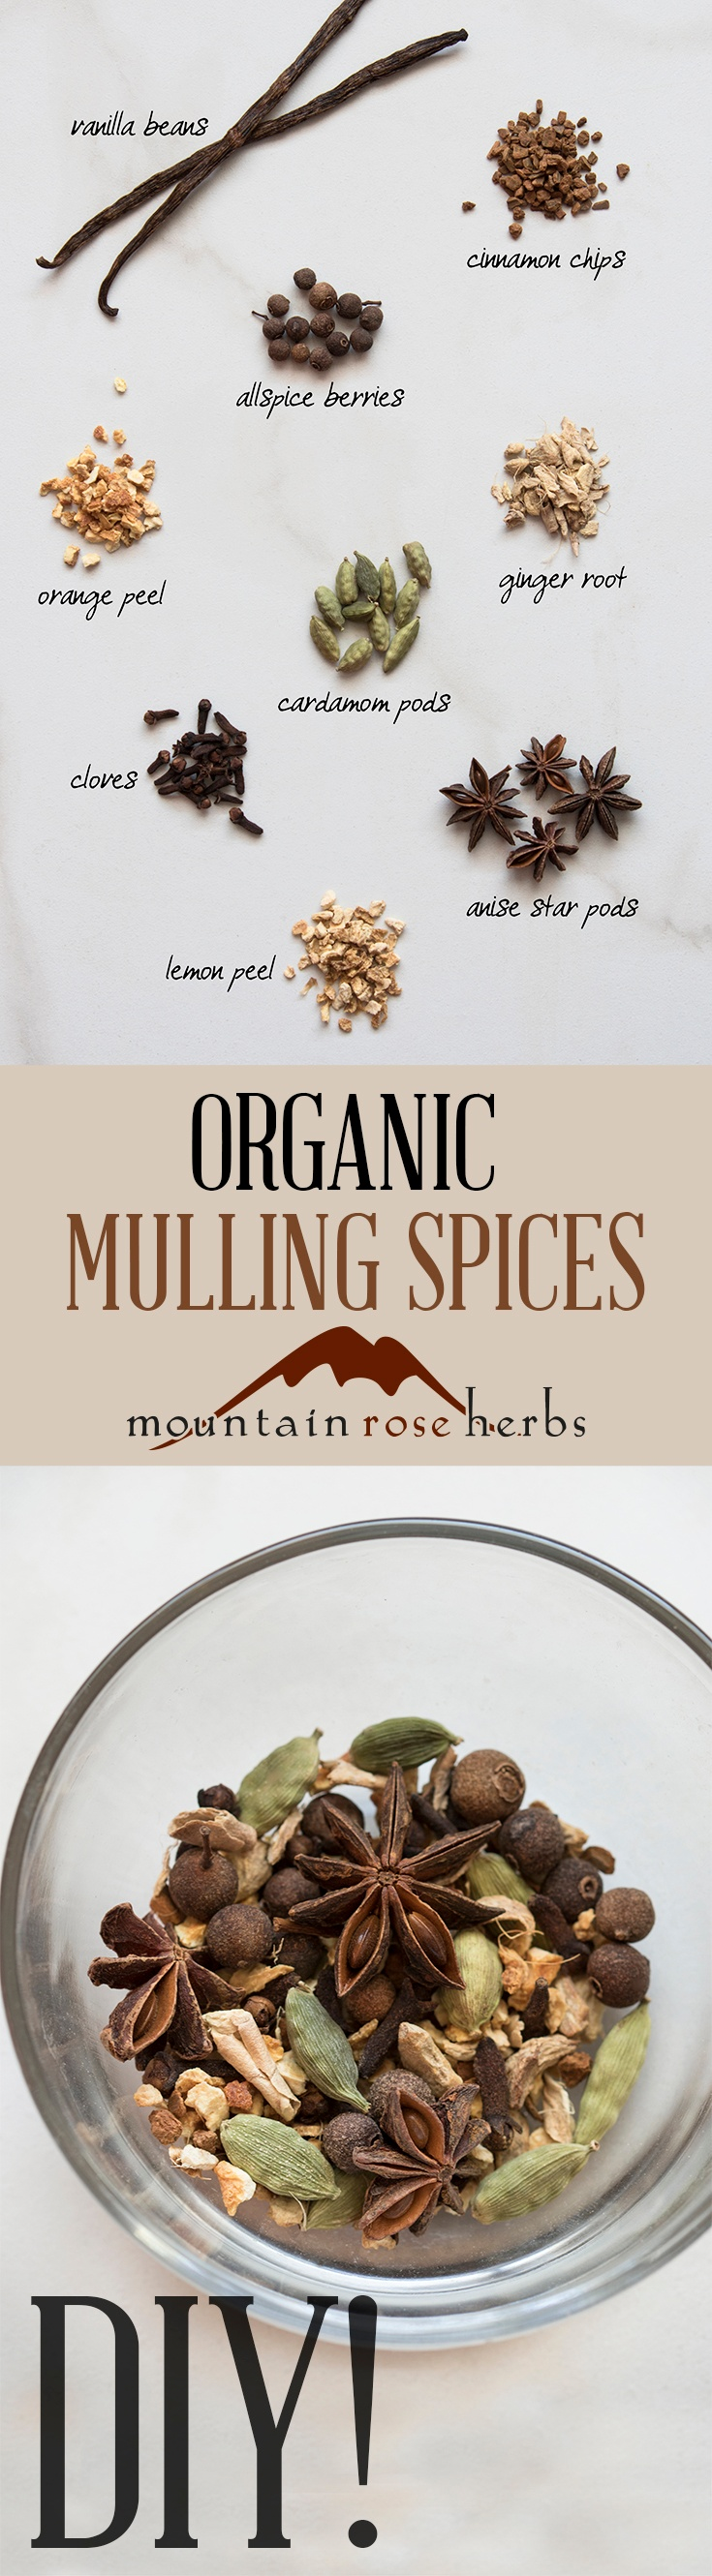 Mulling Spice Recipe by Mountain Rose Herbs